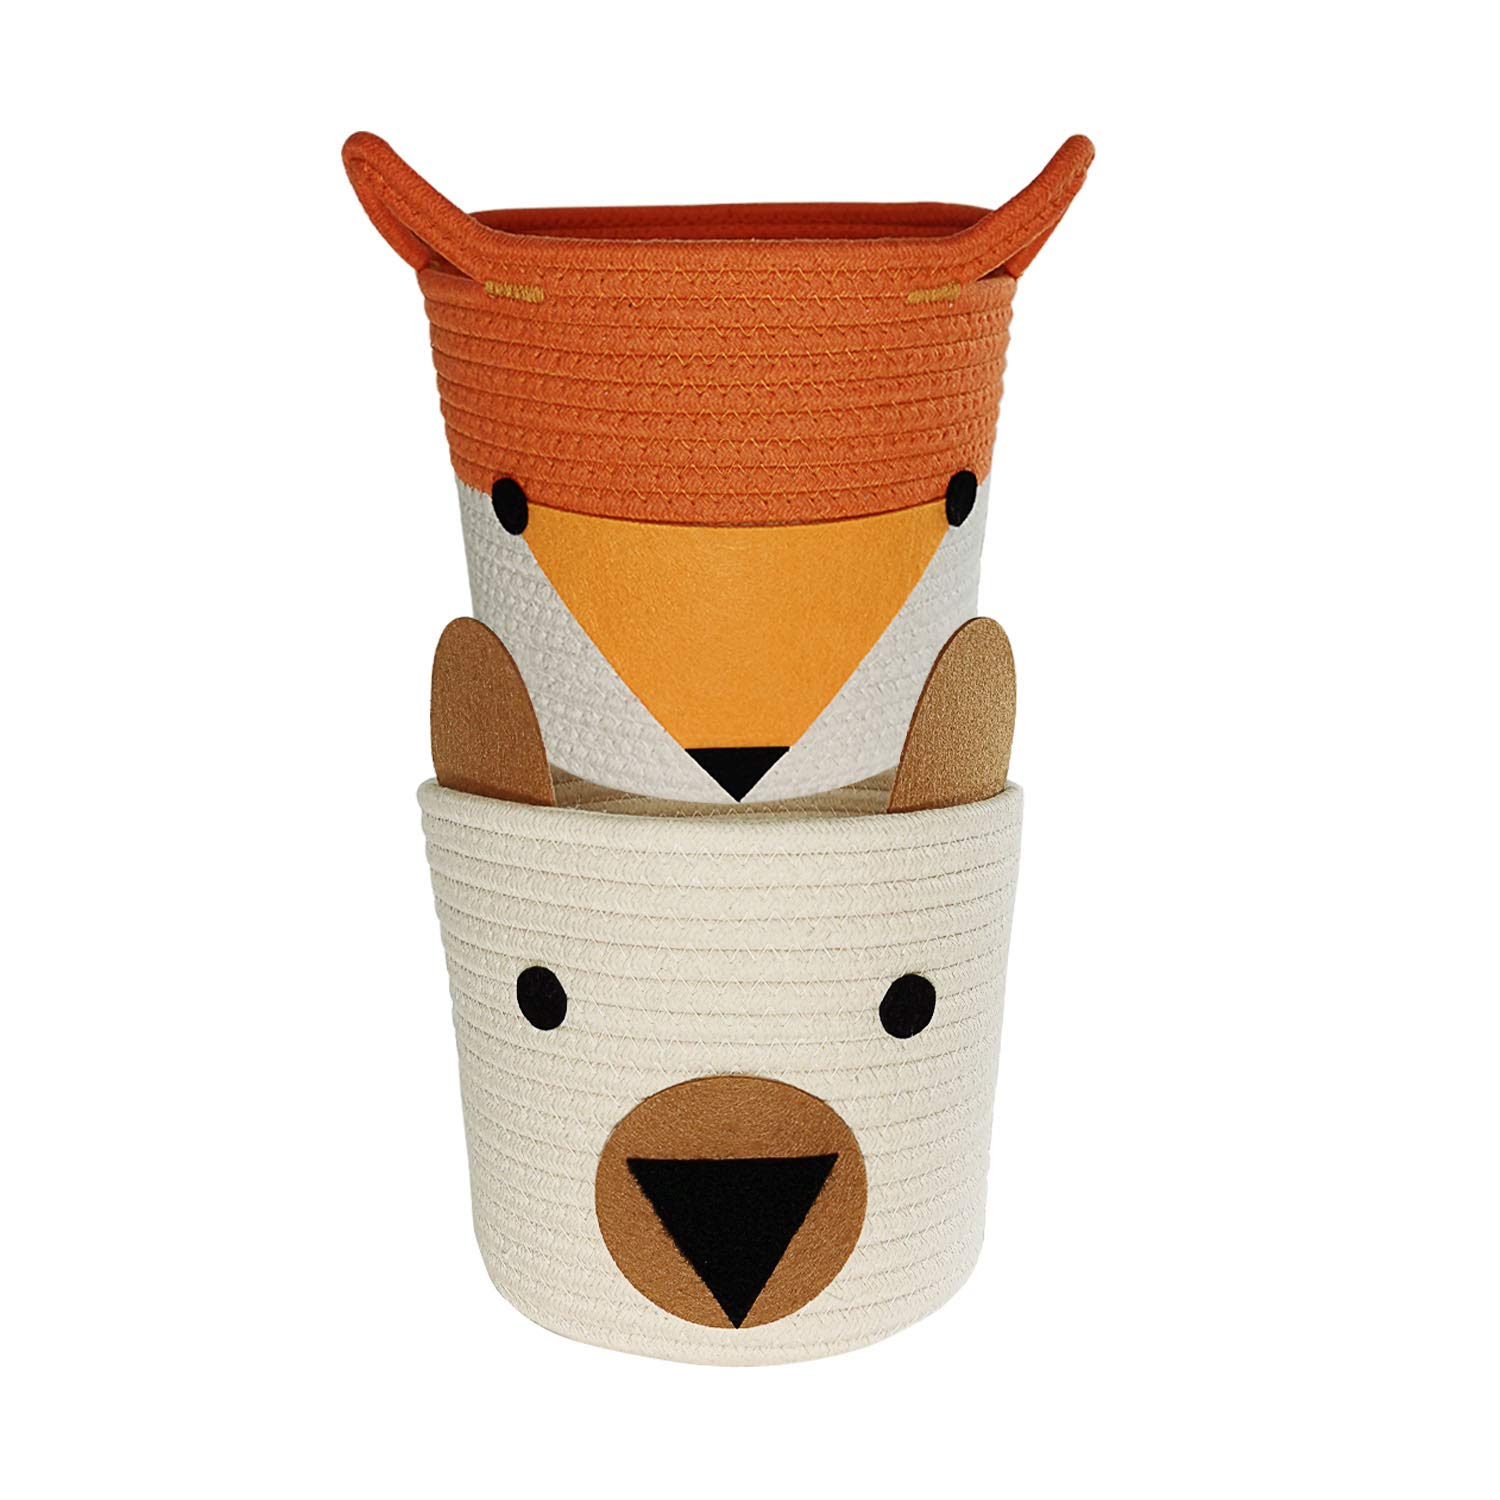 Small Woven Storage Baskets,2 Pack Cotton Rope Baskets for Toys,Towels,Nursery,Kids Room,Decorative Hampers | Cute Pet Gift Basket for Cat,Dog-White Bear and Orange Fox